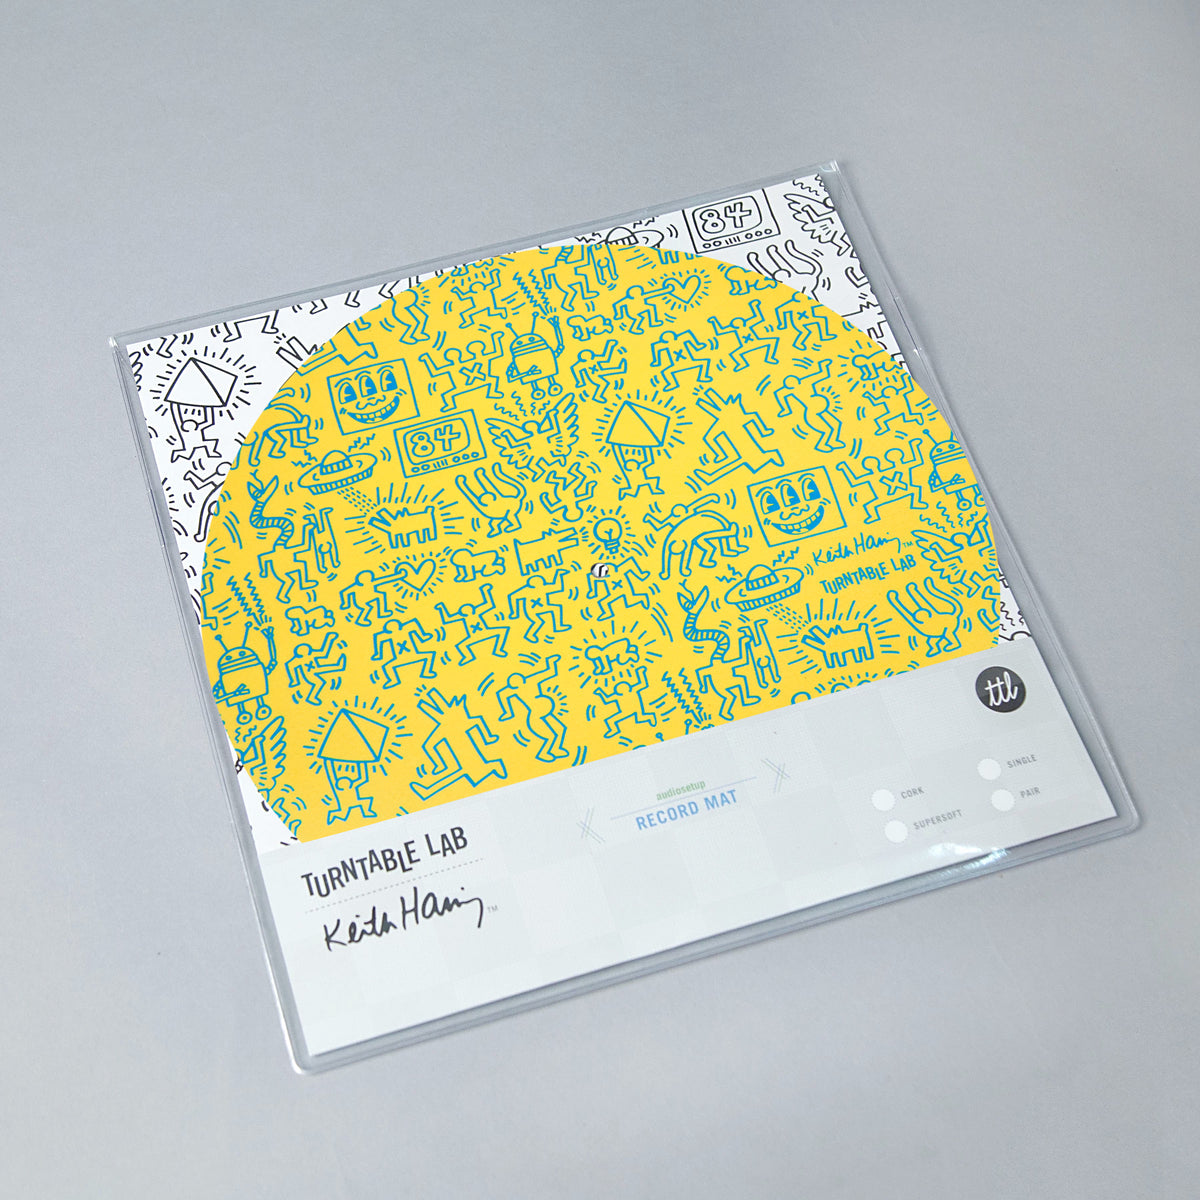 Turntable Lab: Keith Haring Slipmat Record Mat - Yellow packaging